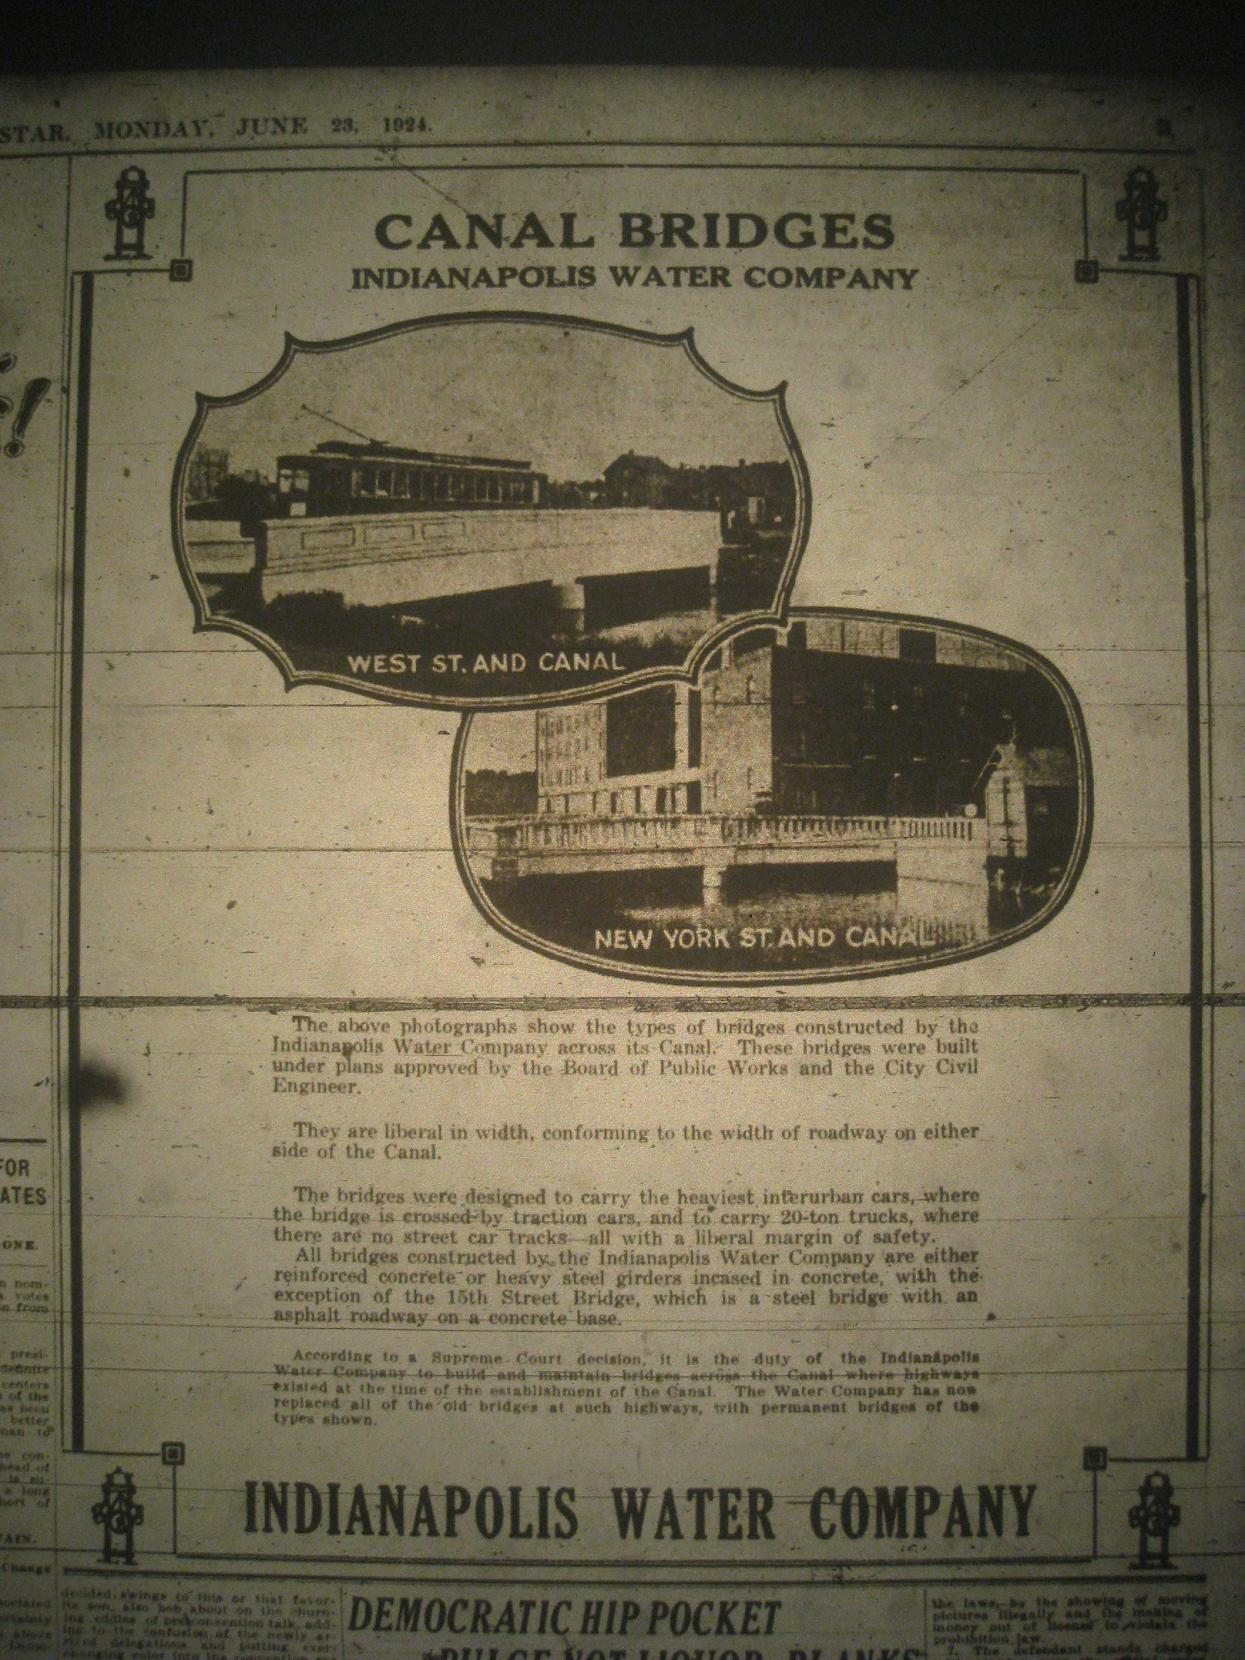 Sunday Adverts: Indianapolis Water Company – Canal Bridges